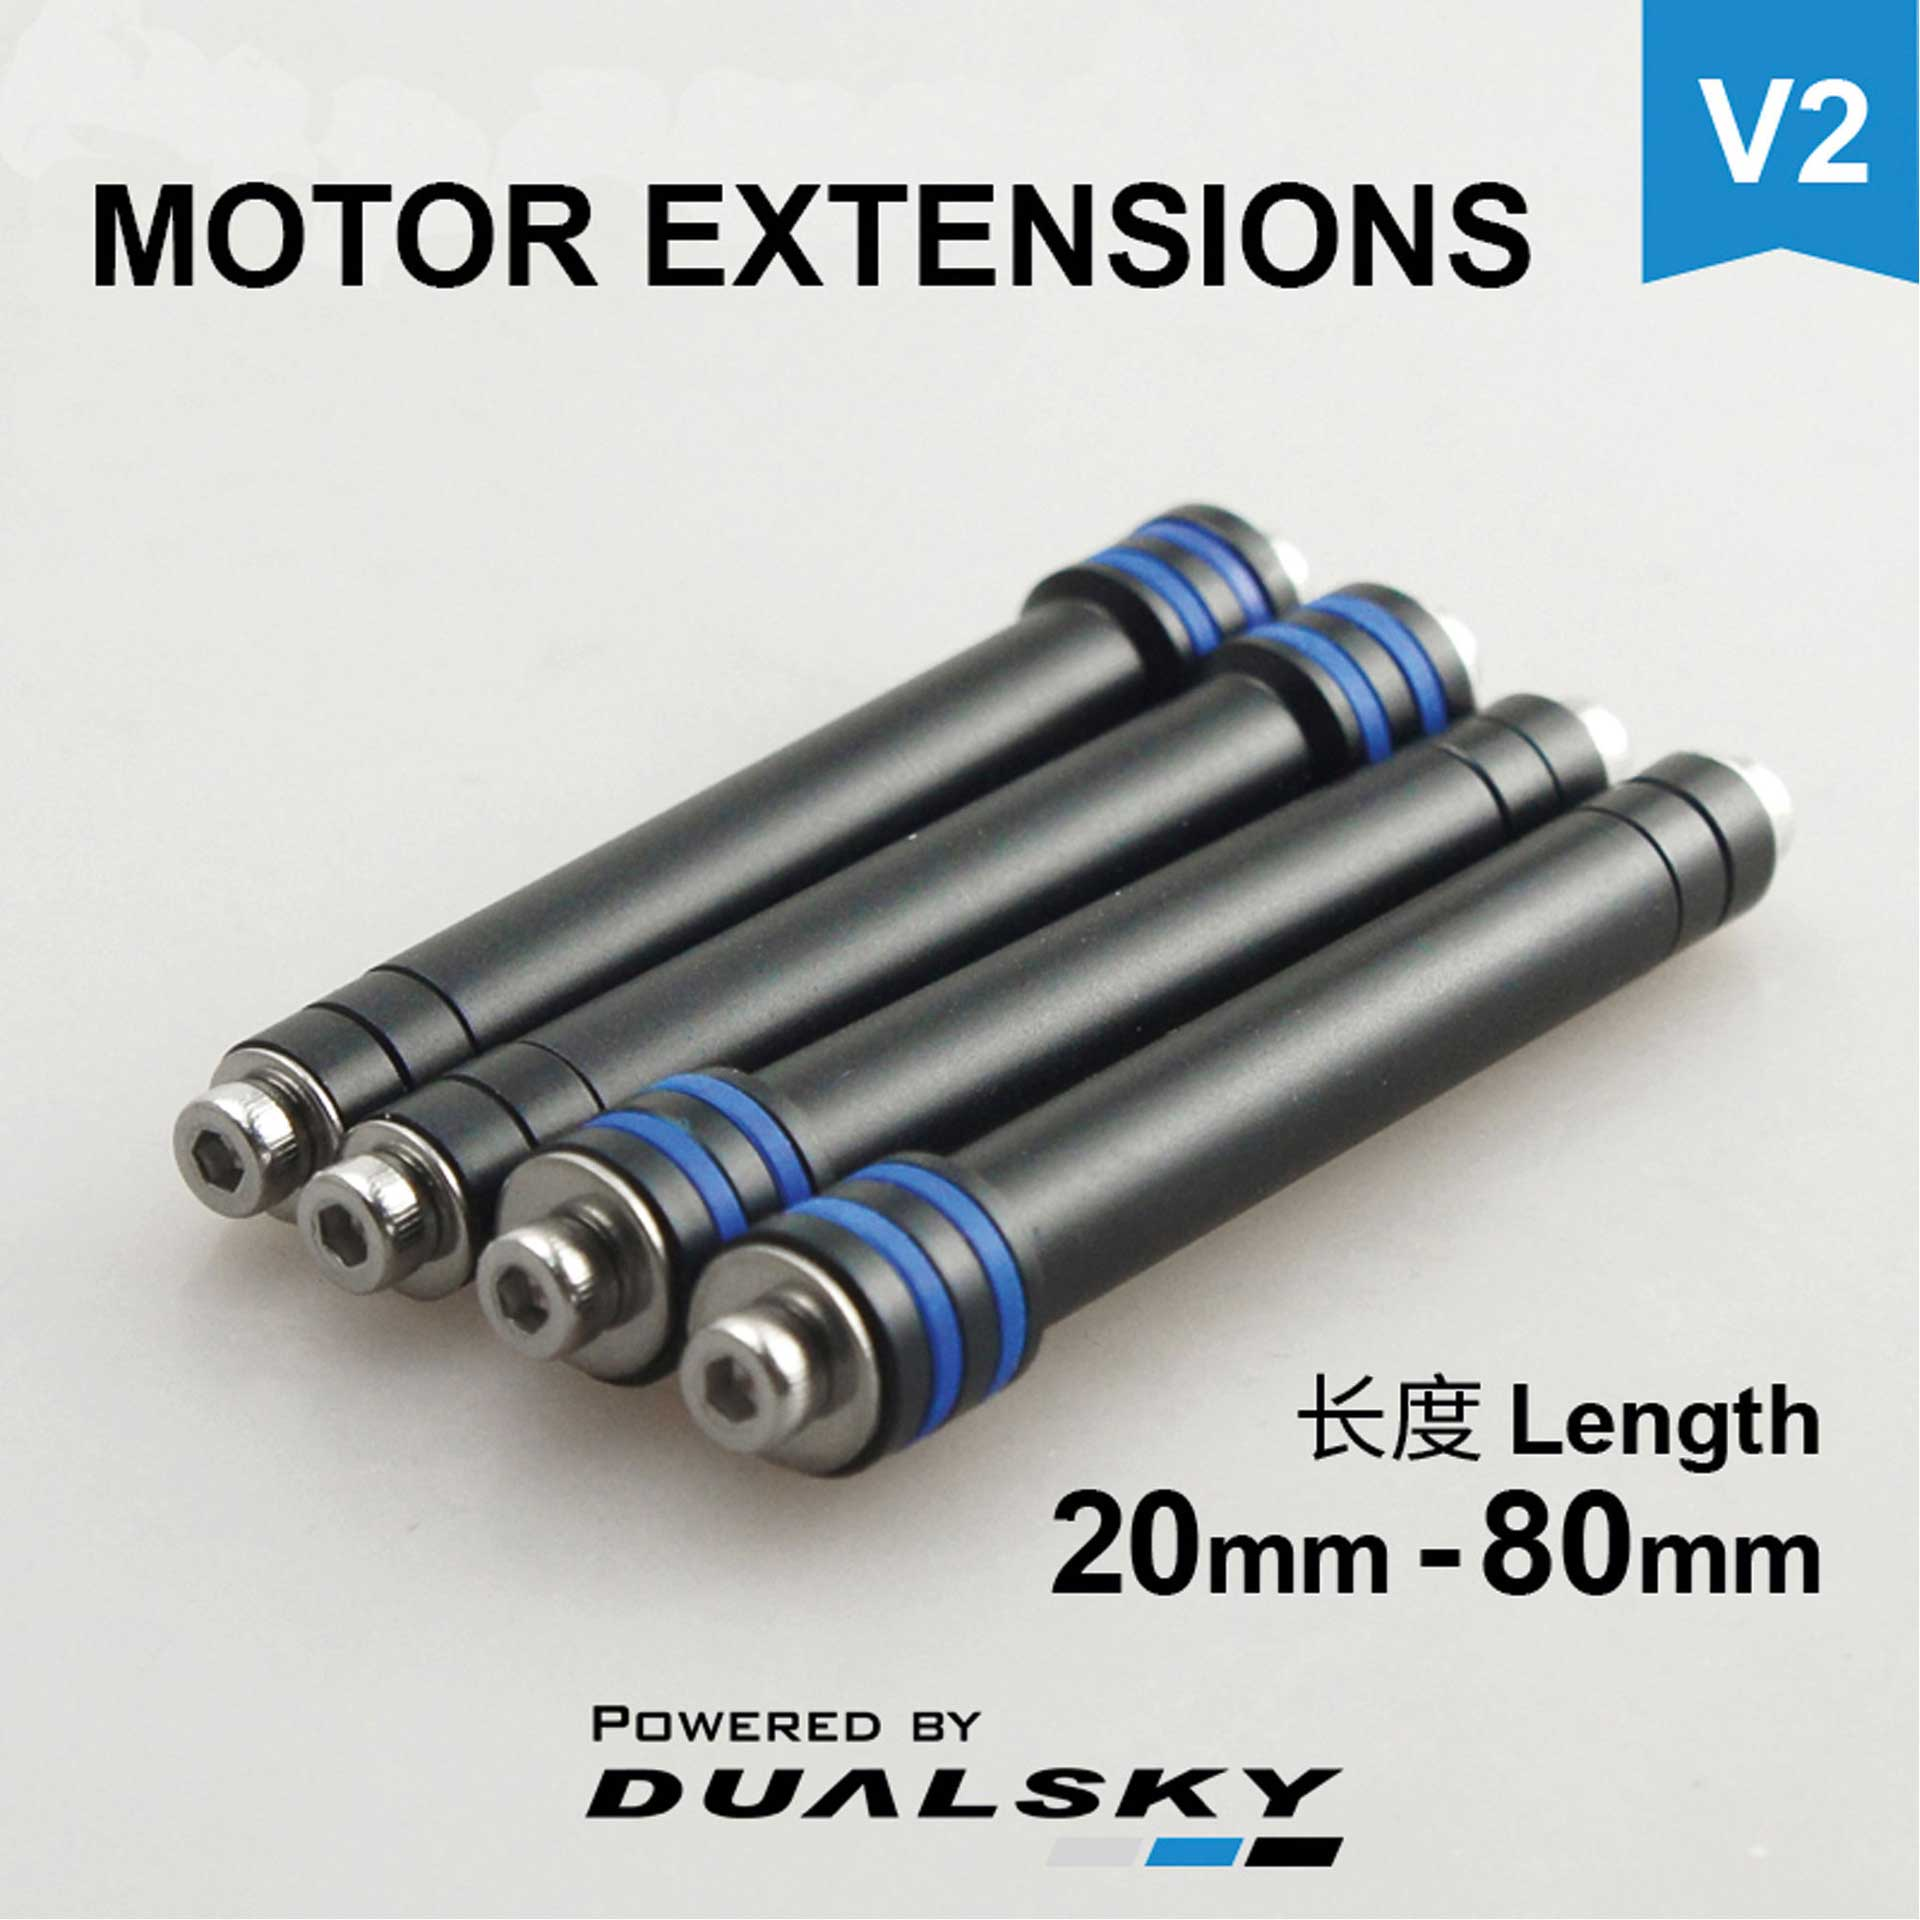 DUALSKY MOTOR EXTENSIONS V9 ME4-80 LENGTH 60 TO 80MM ADJUSTABLE WITH SCREWS